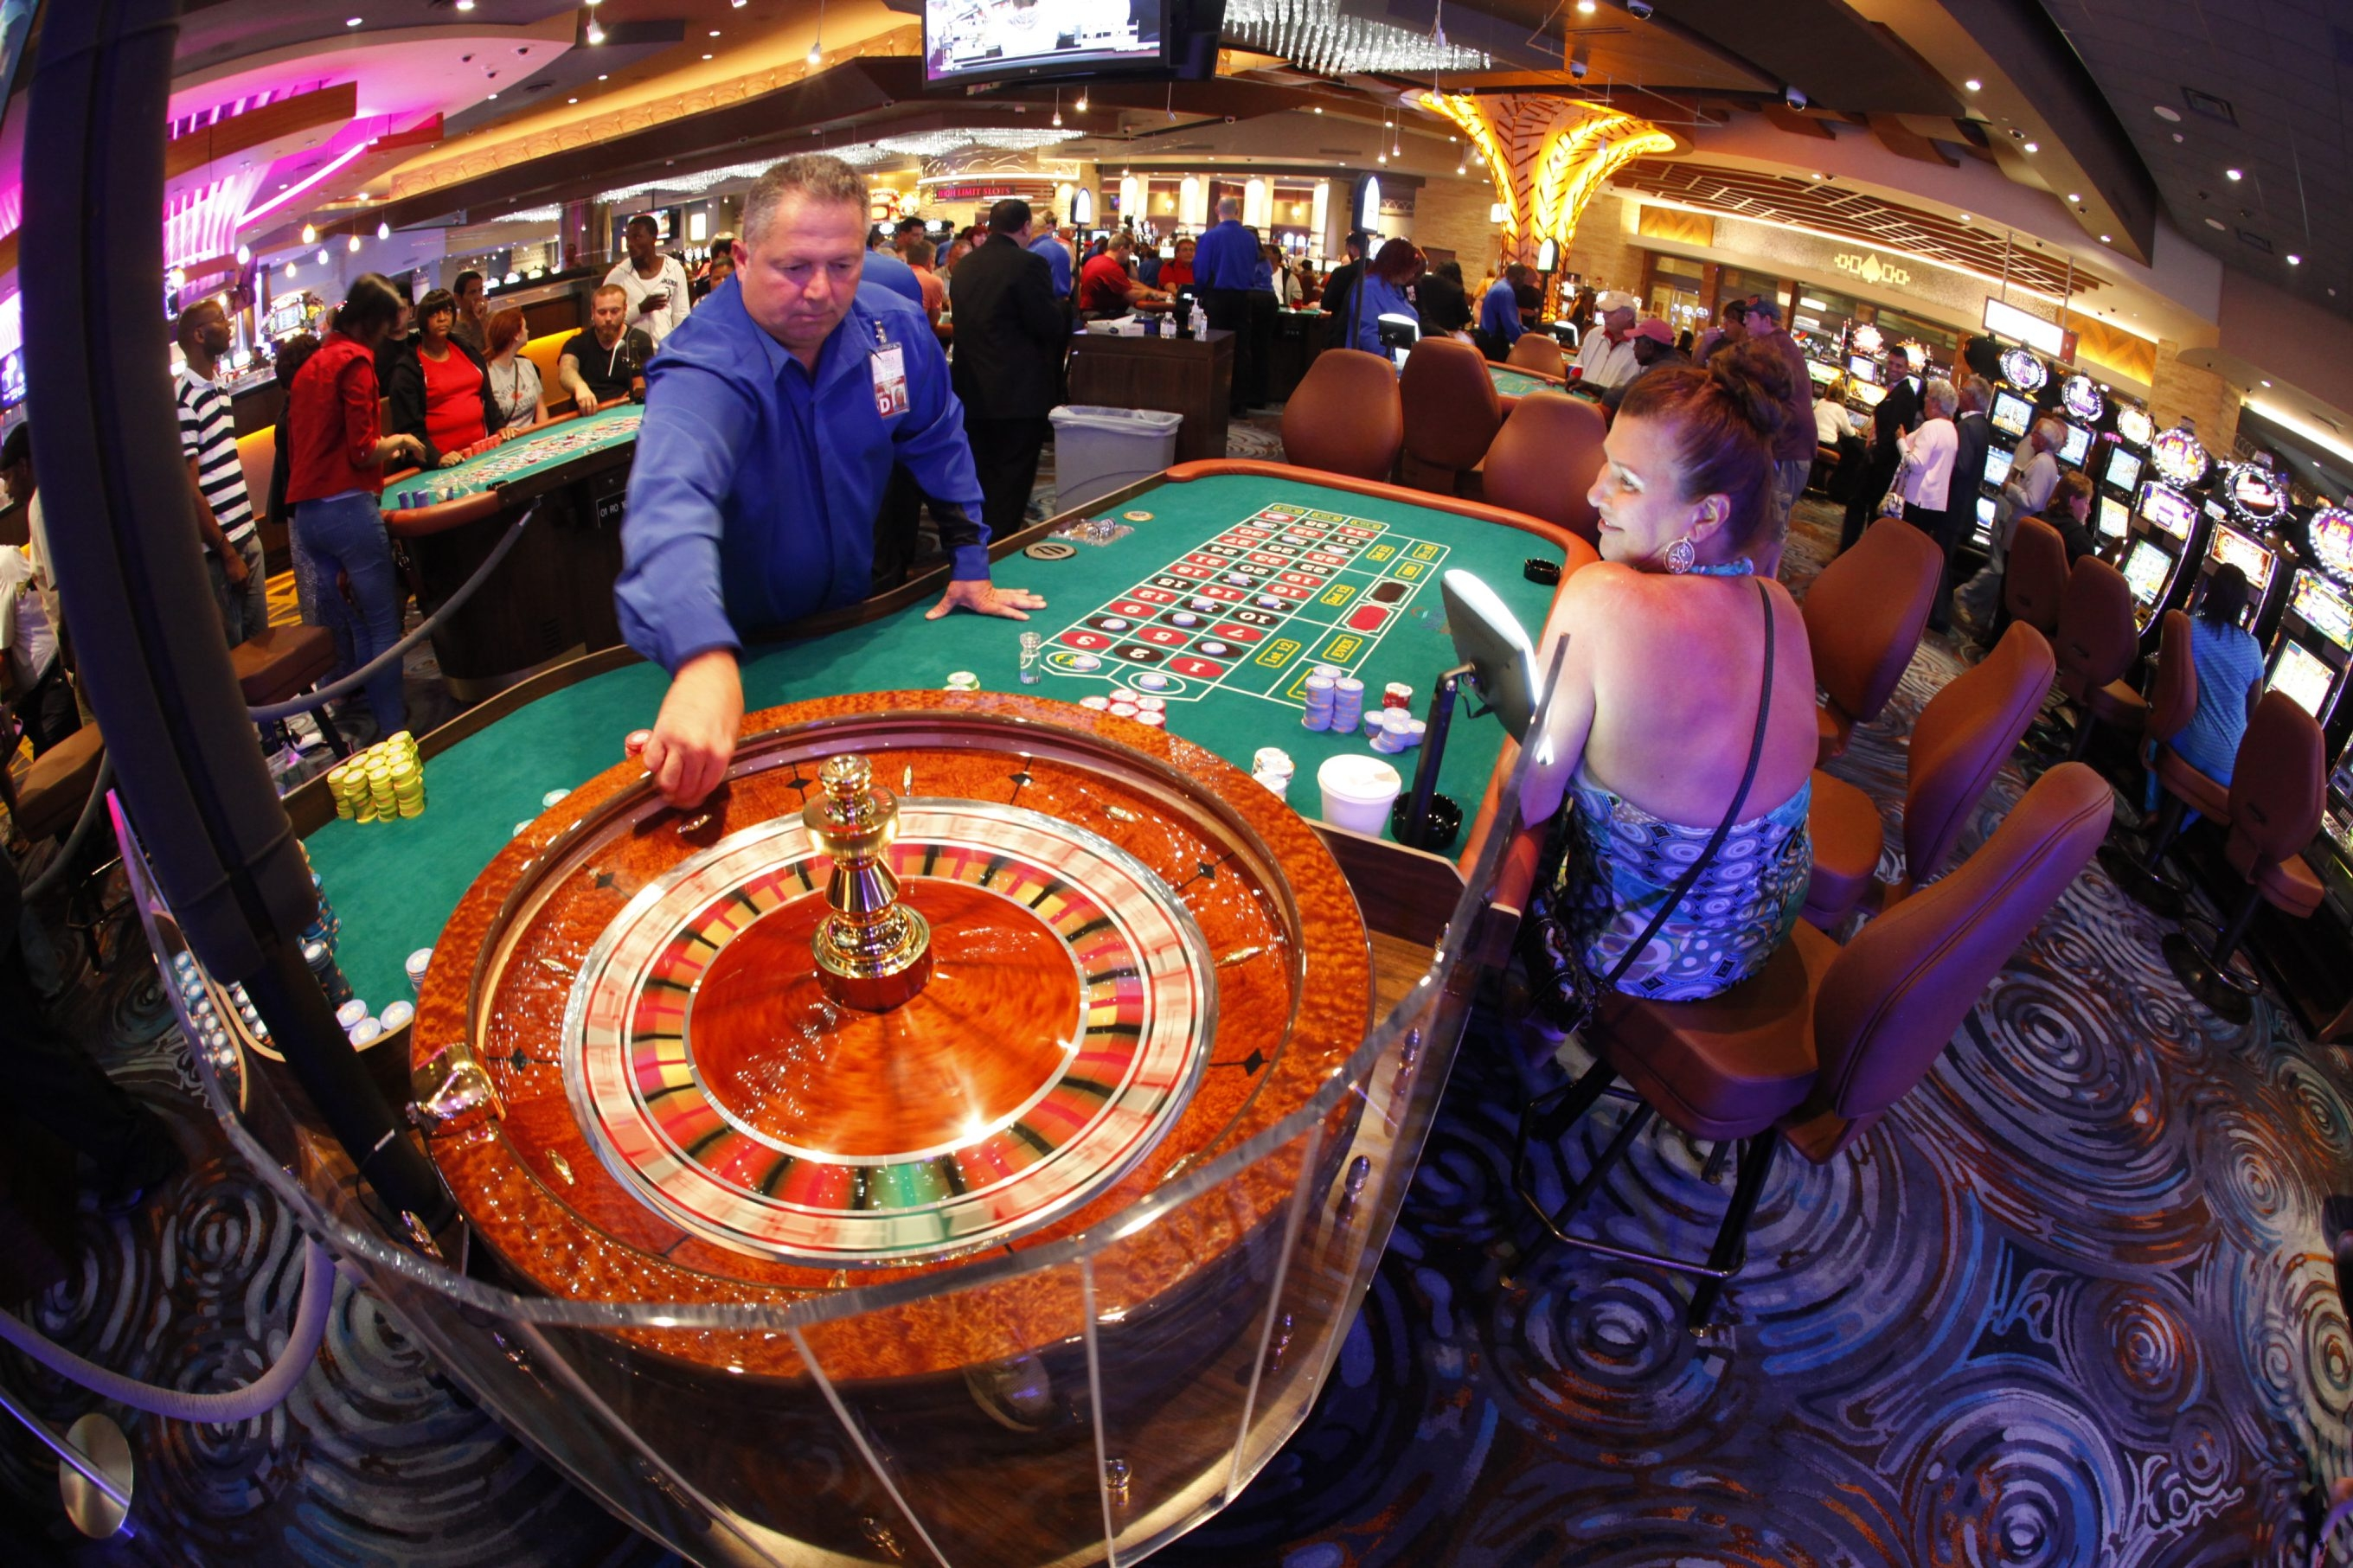 The developer of the proposed Seneca County casino has predicted that $40 million of its annual revenue would be drawn from casinos run by the Seneca Nation.